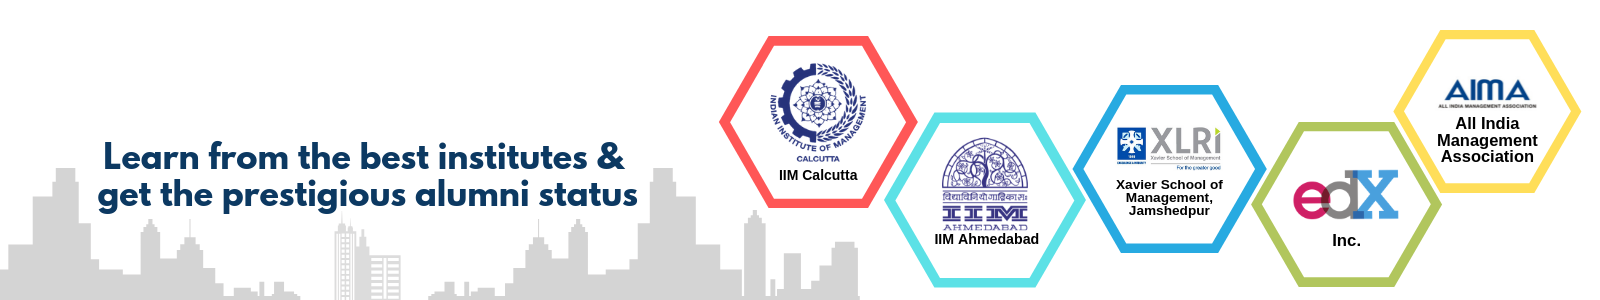 Top Executive Development Programmes from IIM & XLRI in India